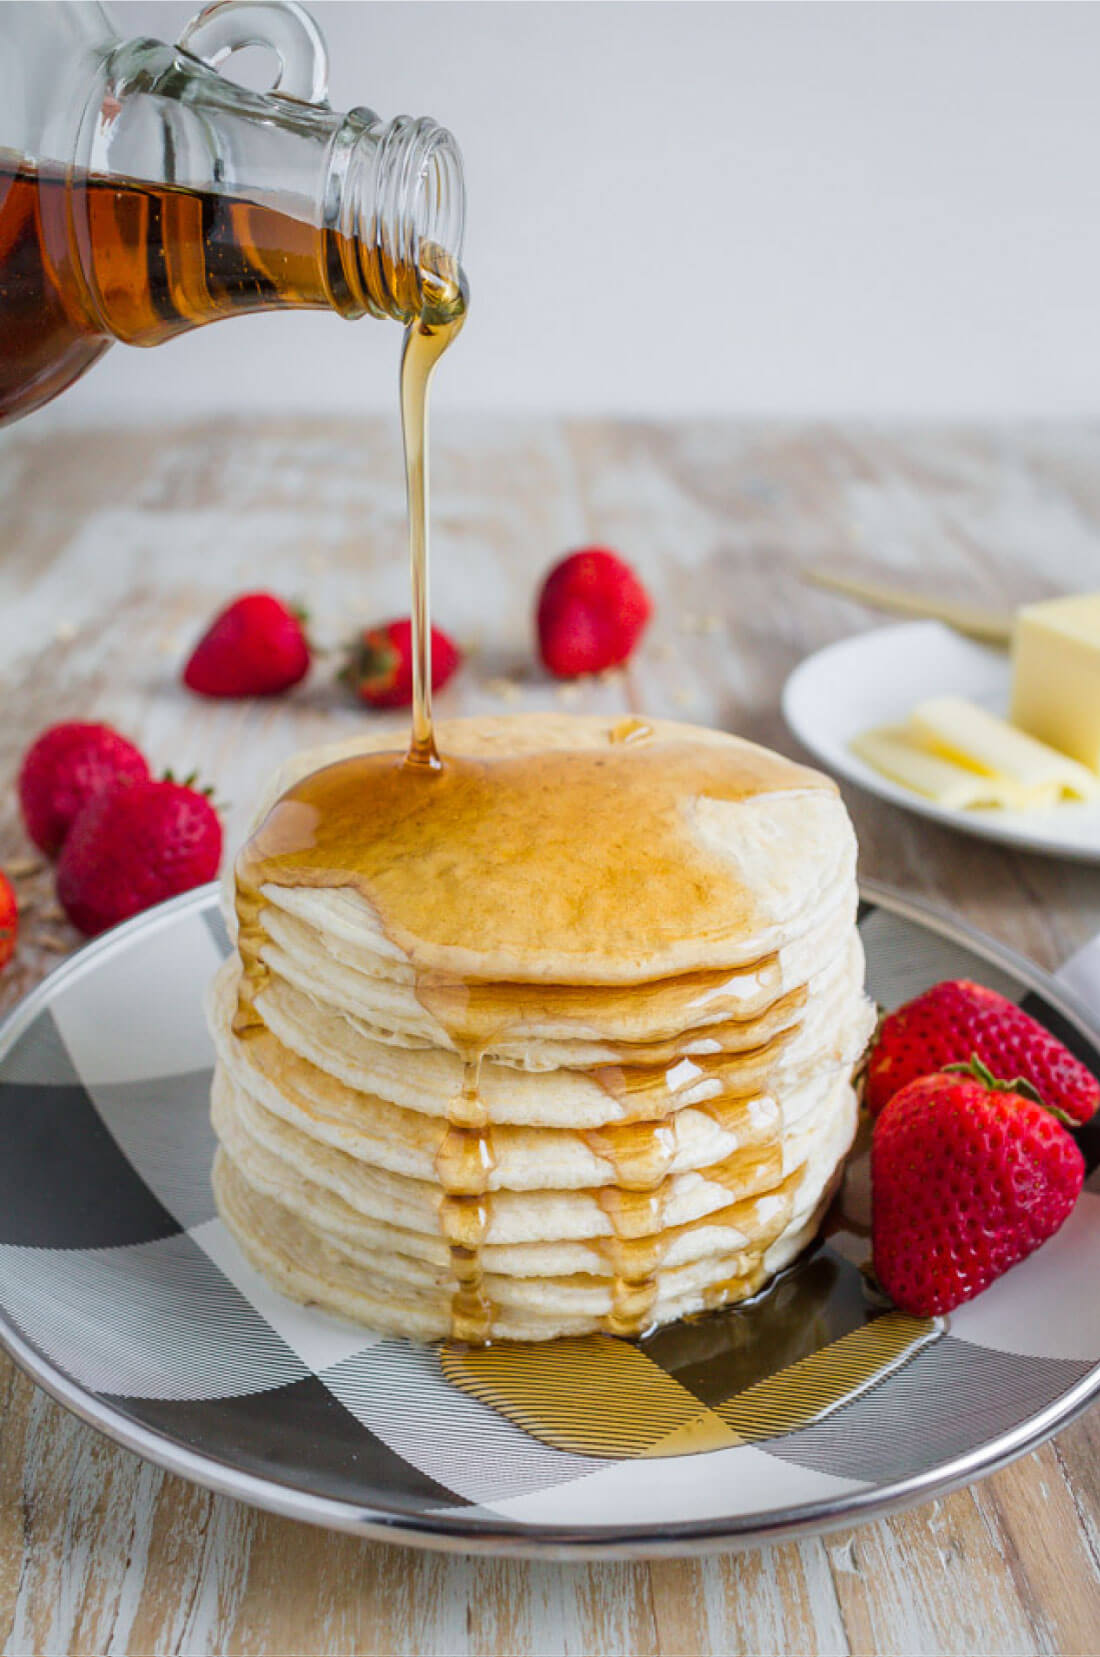 Healthy Pancake Recipe - make these 4 ingredient pancakes in the blender! With syrup.